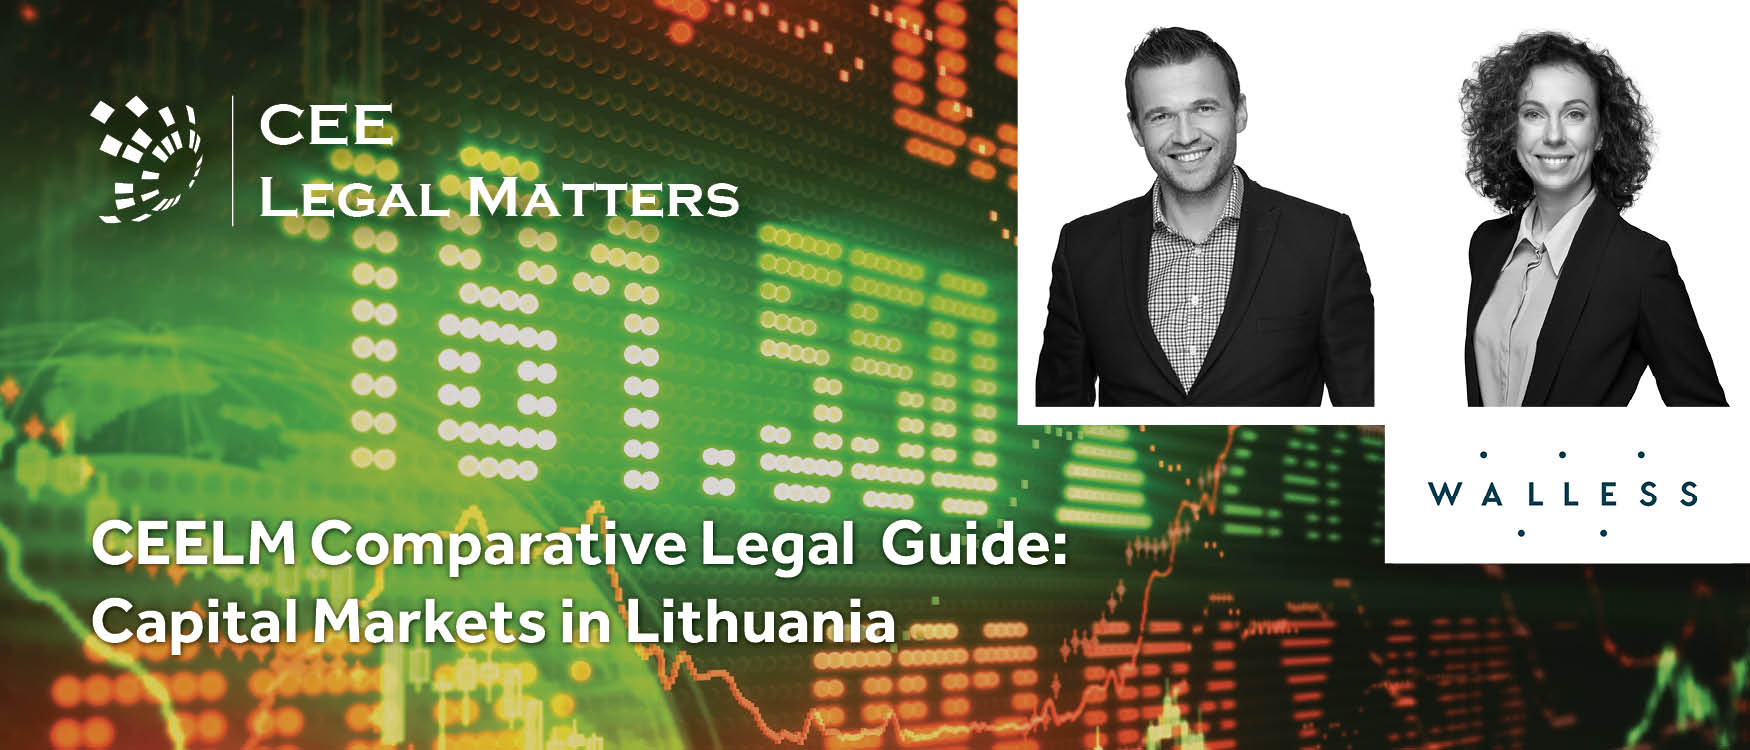 Capital Markets in Lithuania